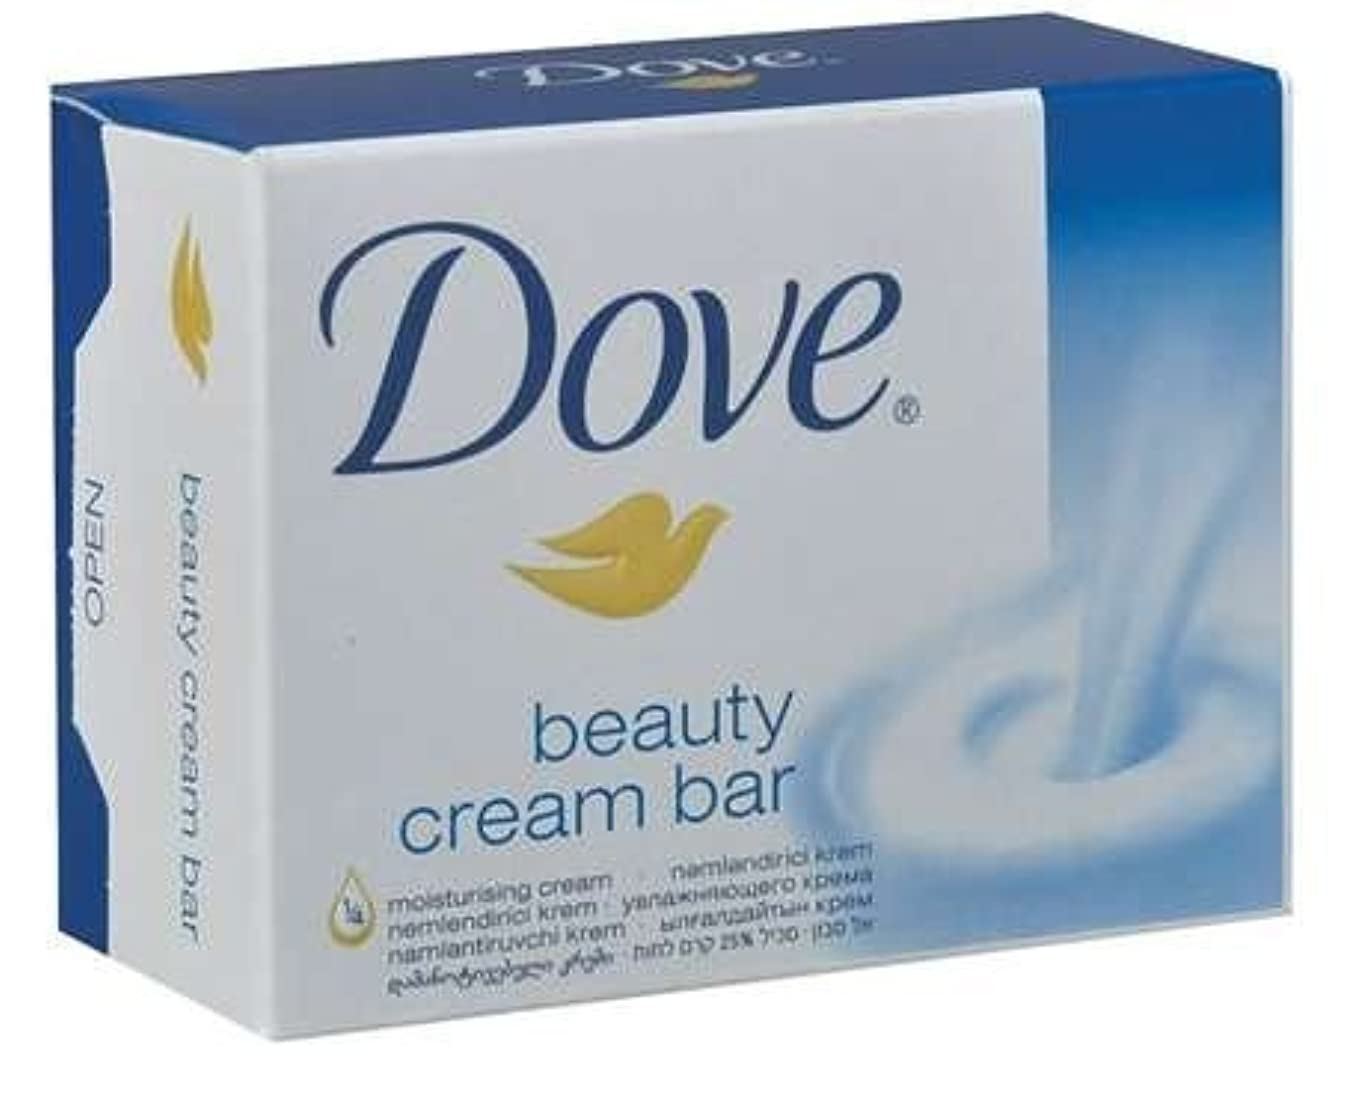 ハックあごひげセールDove Original Beauty Cream Bar White Soap 100 G / 3.5 Oz Bars (Pack of 12) by Dove [並行輸入品]